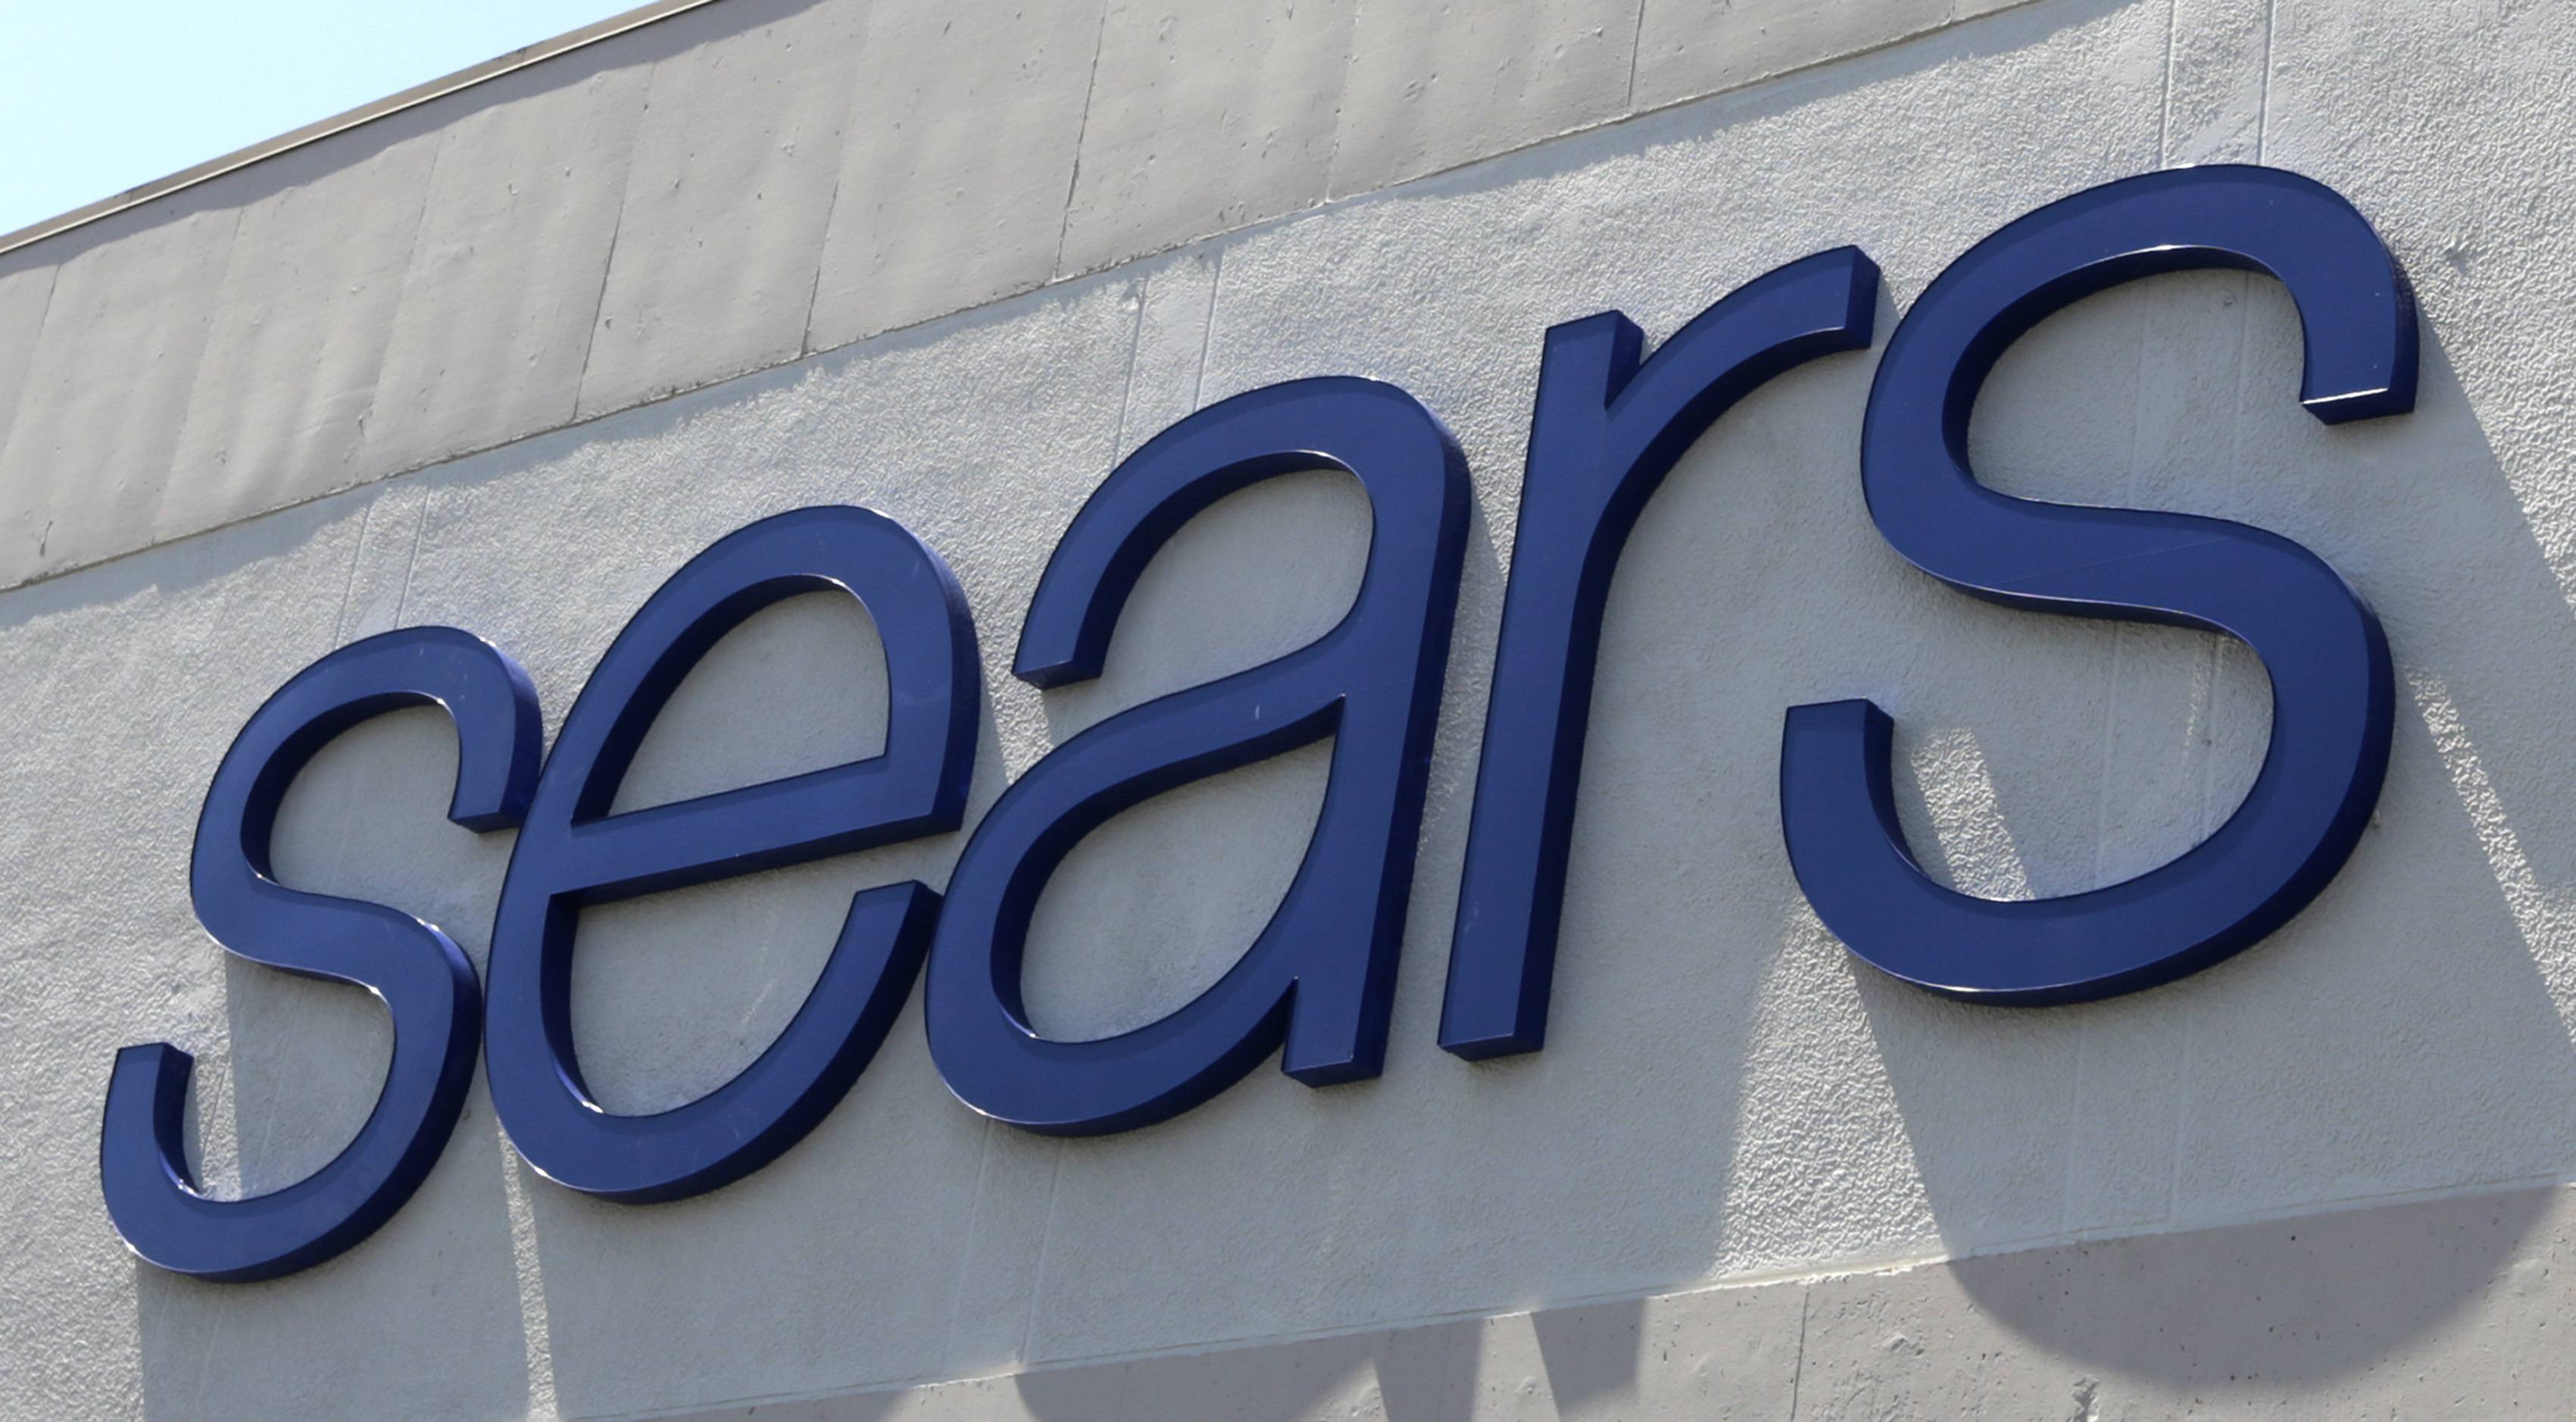 Sears is closing another 72 stores after reporting a first-quarter losses and plunging sales. The struggling retailer said Thursday that it has identified about 100 stores that are no longer turning profits, and 72 of those locations will be shuttered soon.